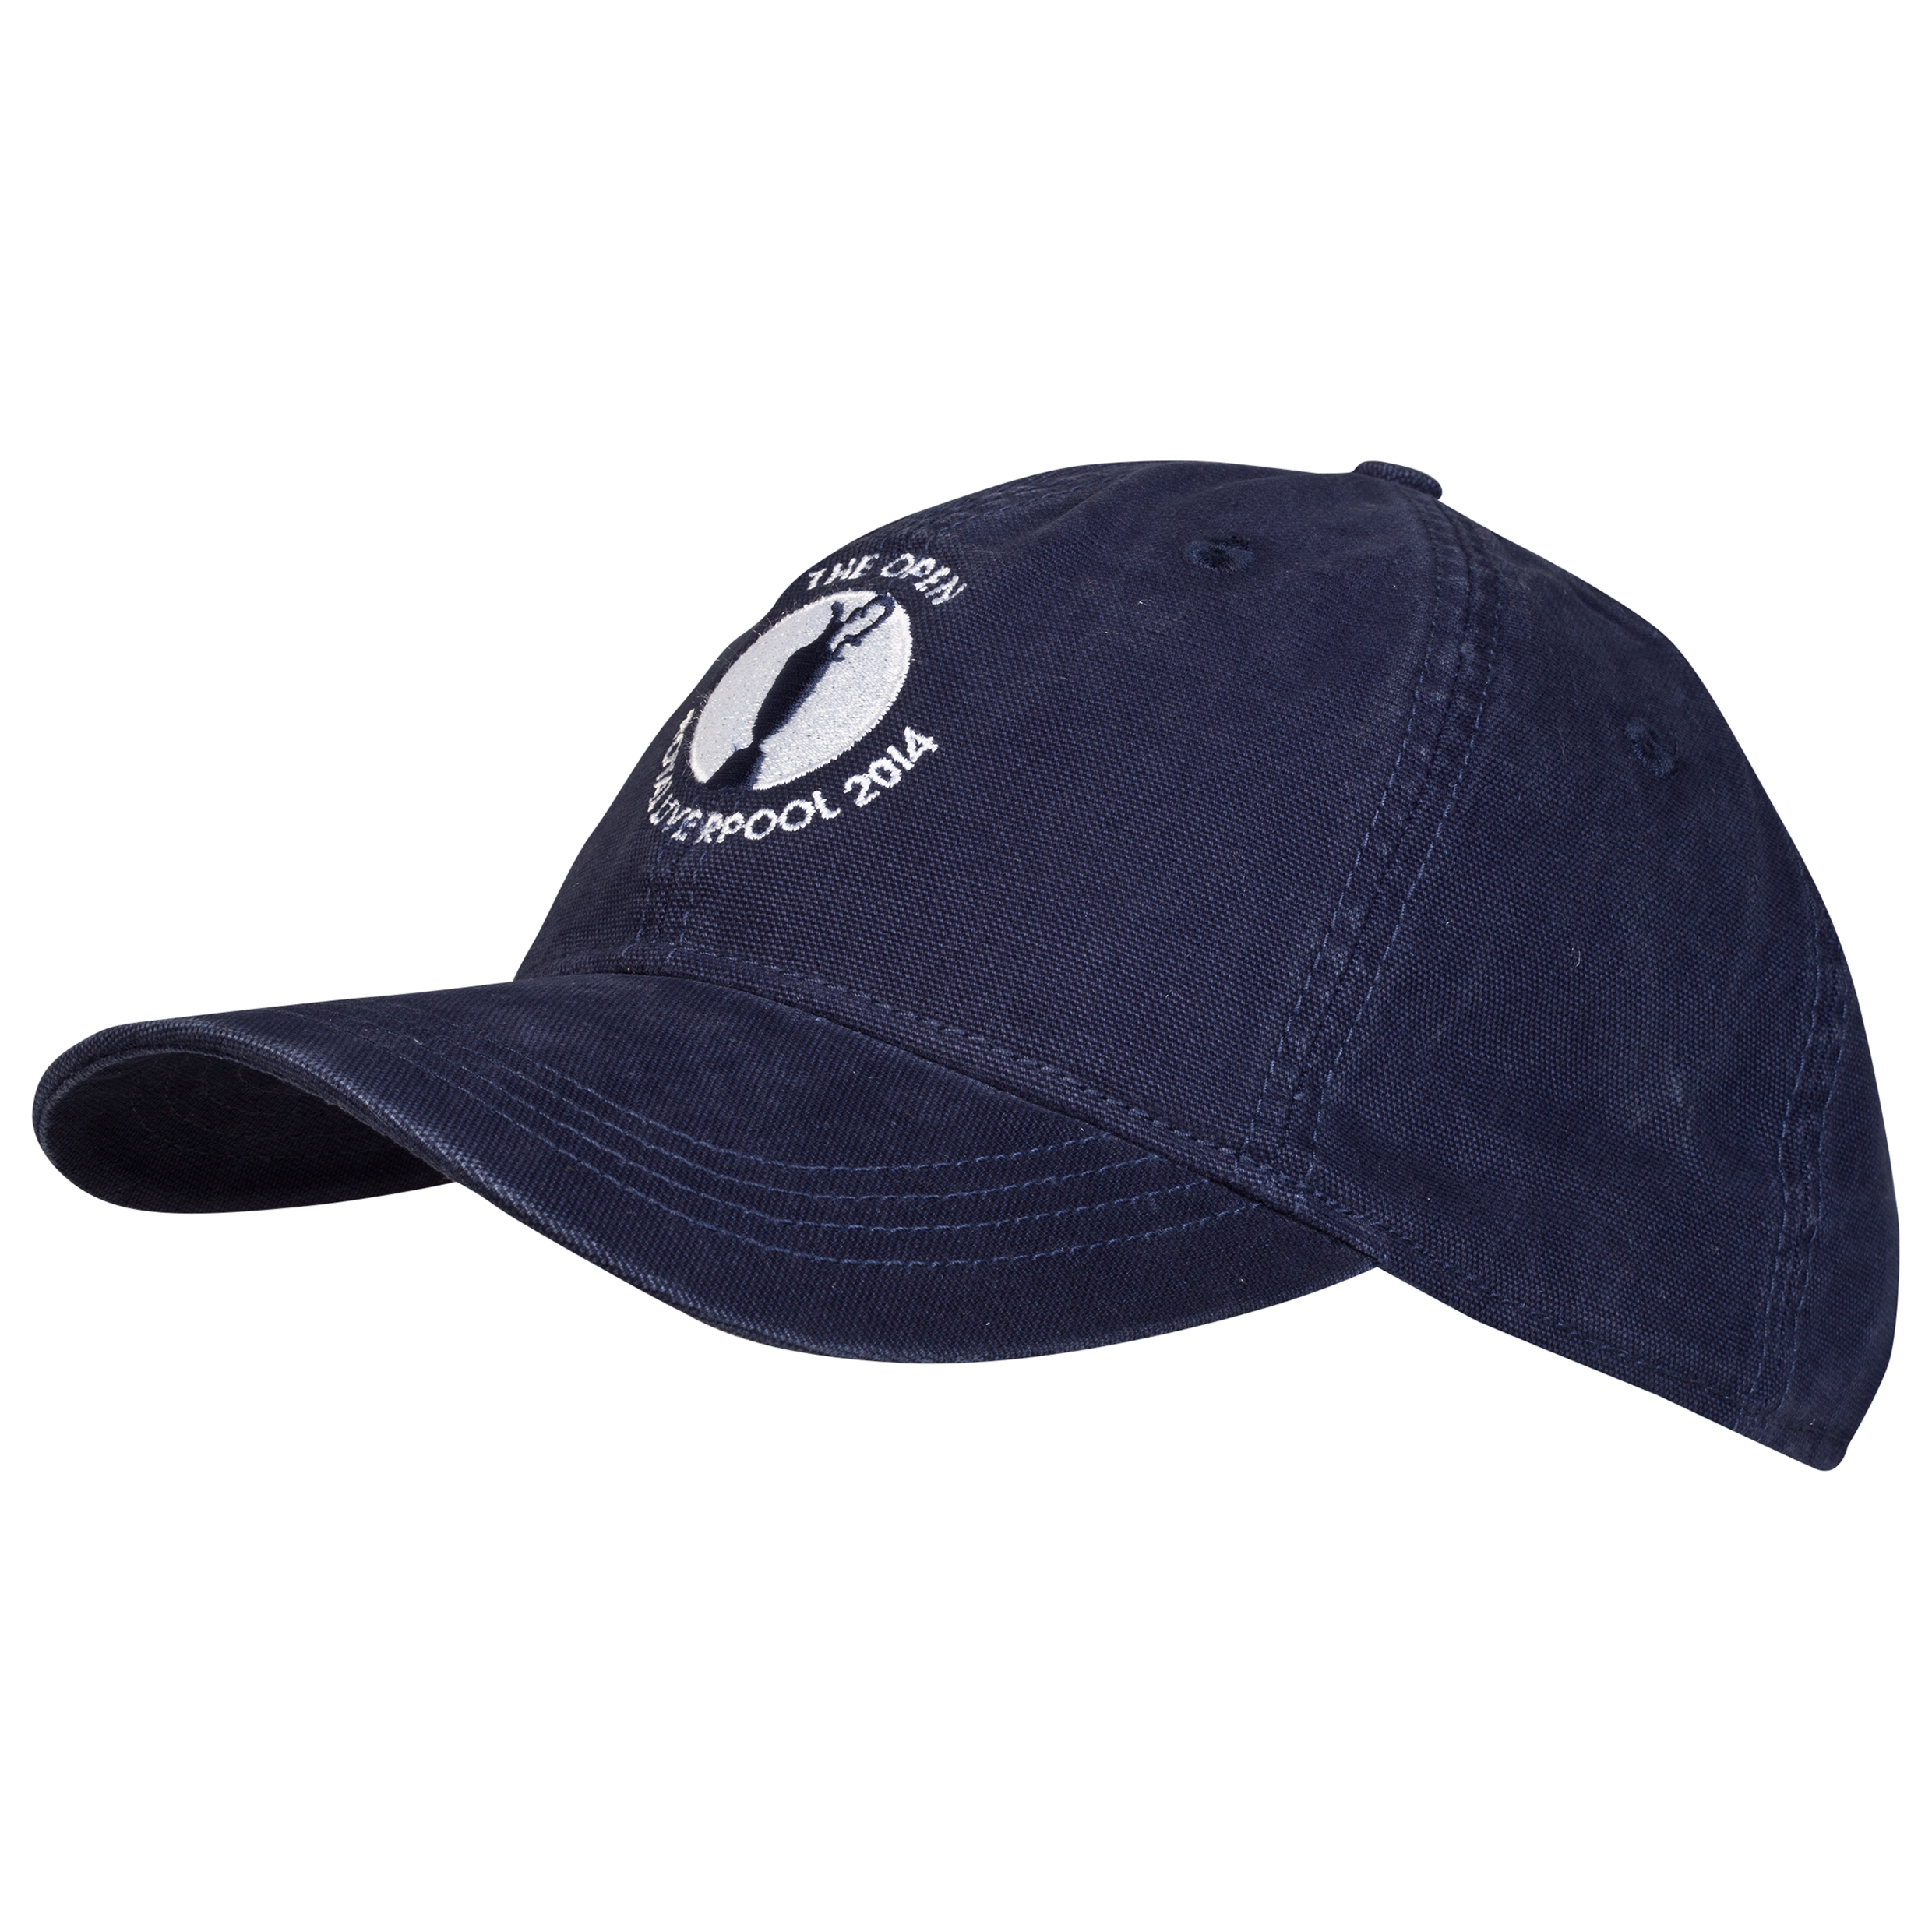 The Open Championship Royal Liverpool 2014 Sandblasted Canvas Unstructured Cap Navy